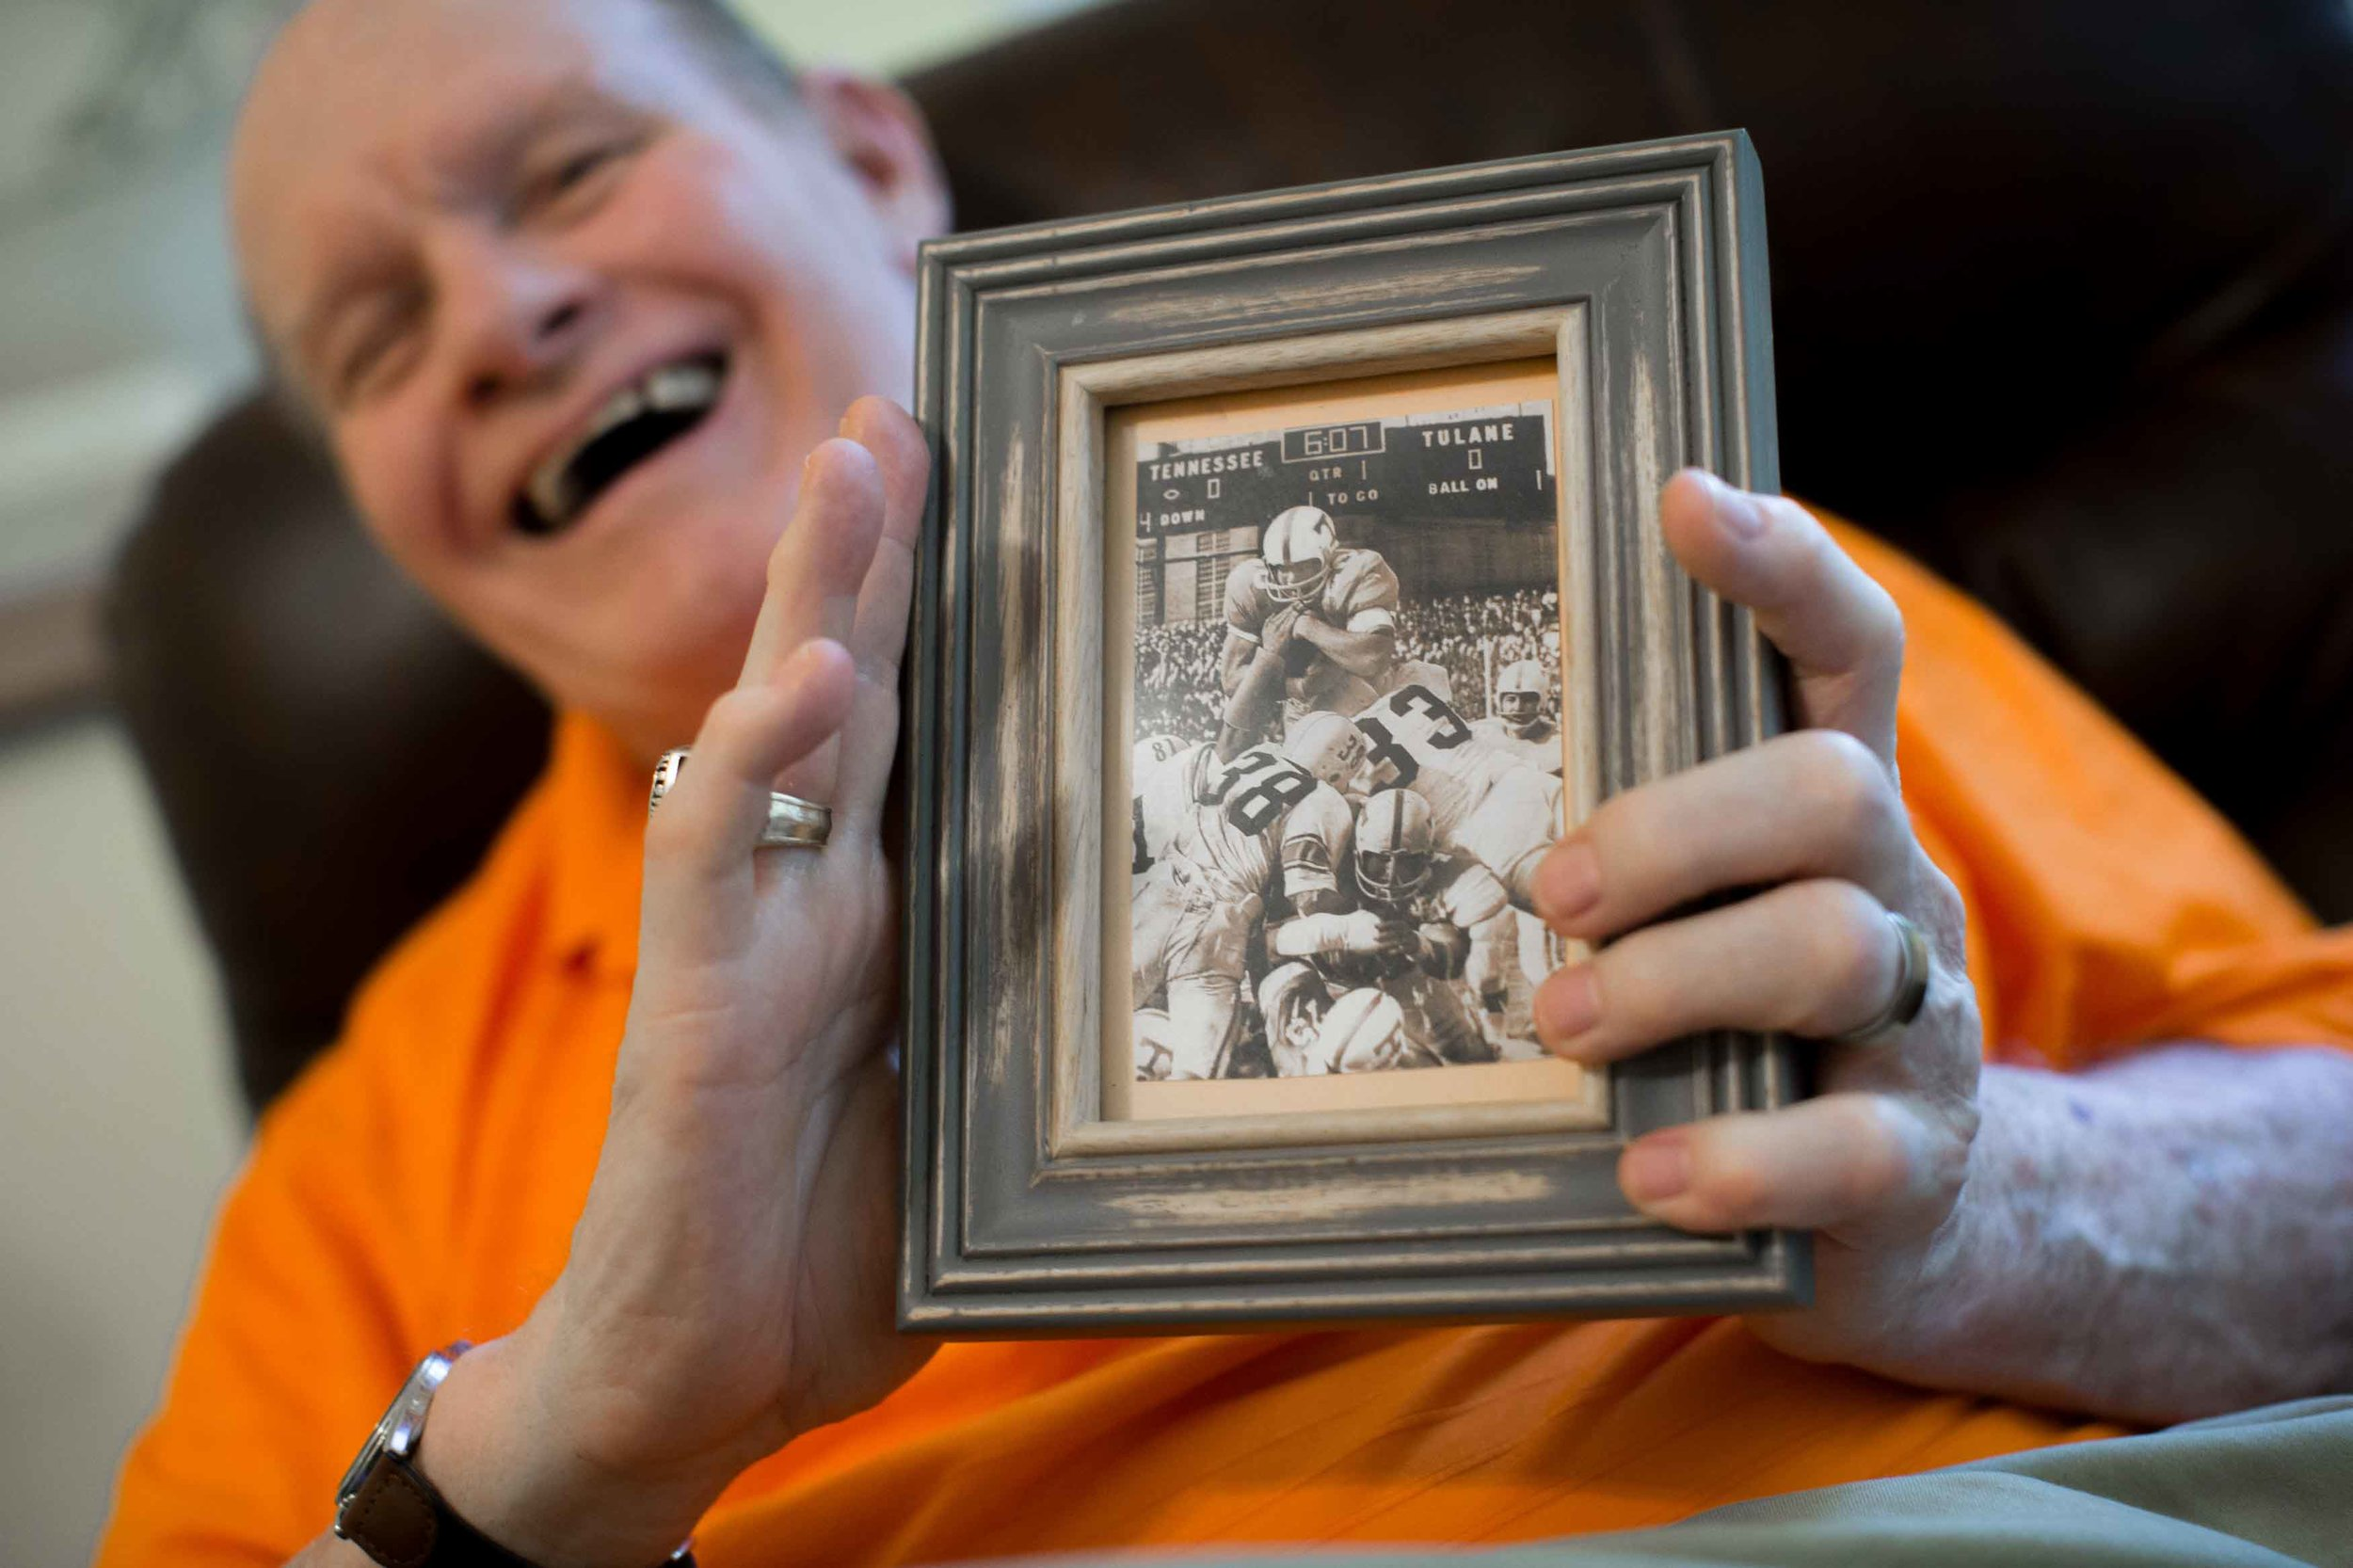 Walter Chadwick, who was a star running back at the University of Tennessee, poses for a portrait at his home while holding a photo of him scoring a touchdown during a game against Tulane University, Sunday, Aug. 28, 2016, in Decatur, Ga. Chadwick was named head coach of Wills High School in 1971, but after only being on the job just two weeks, a Wells Fargo armored van slammed into him leaving Chadwick permanently brain damaged. Chadwick recently gathered with friends and former students, many of whom thought he was dead. (Branden Camp for The Atlanta-Journal Constitution)